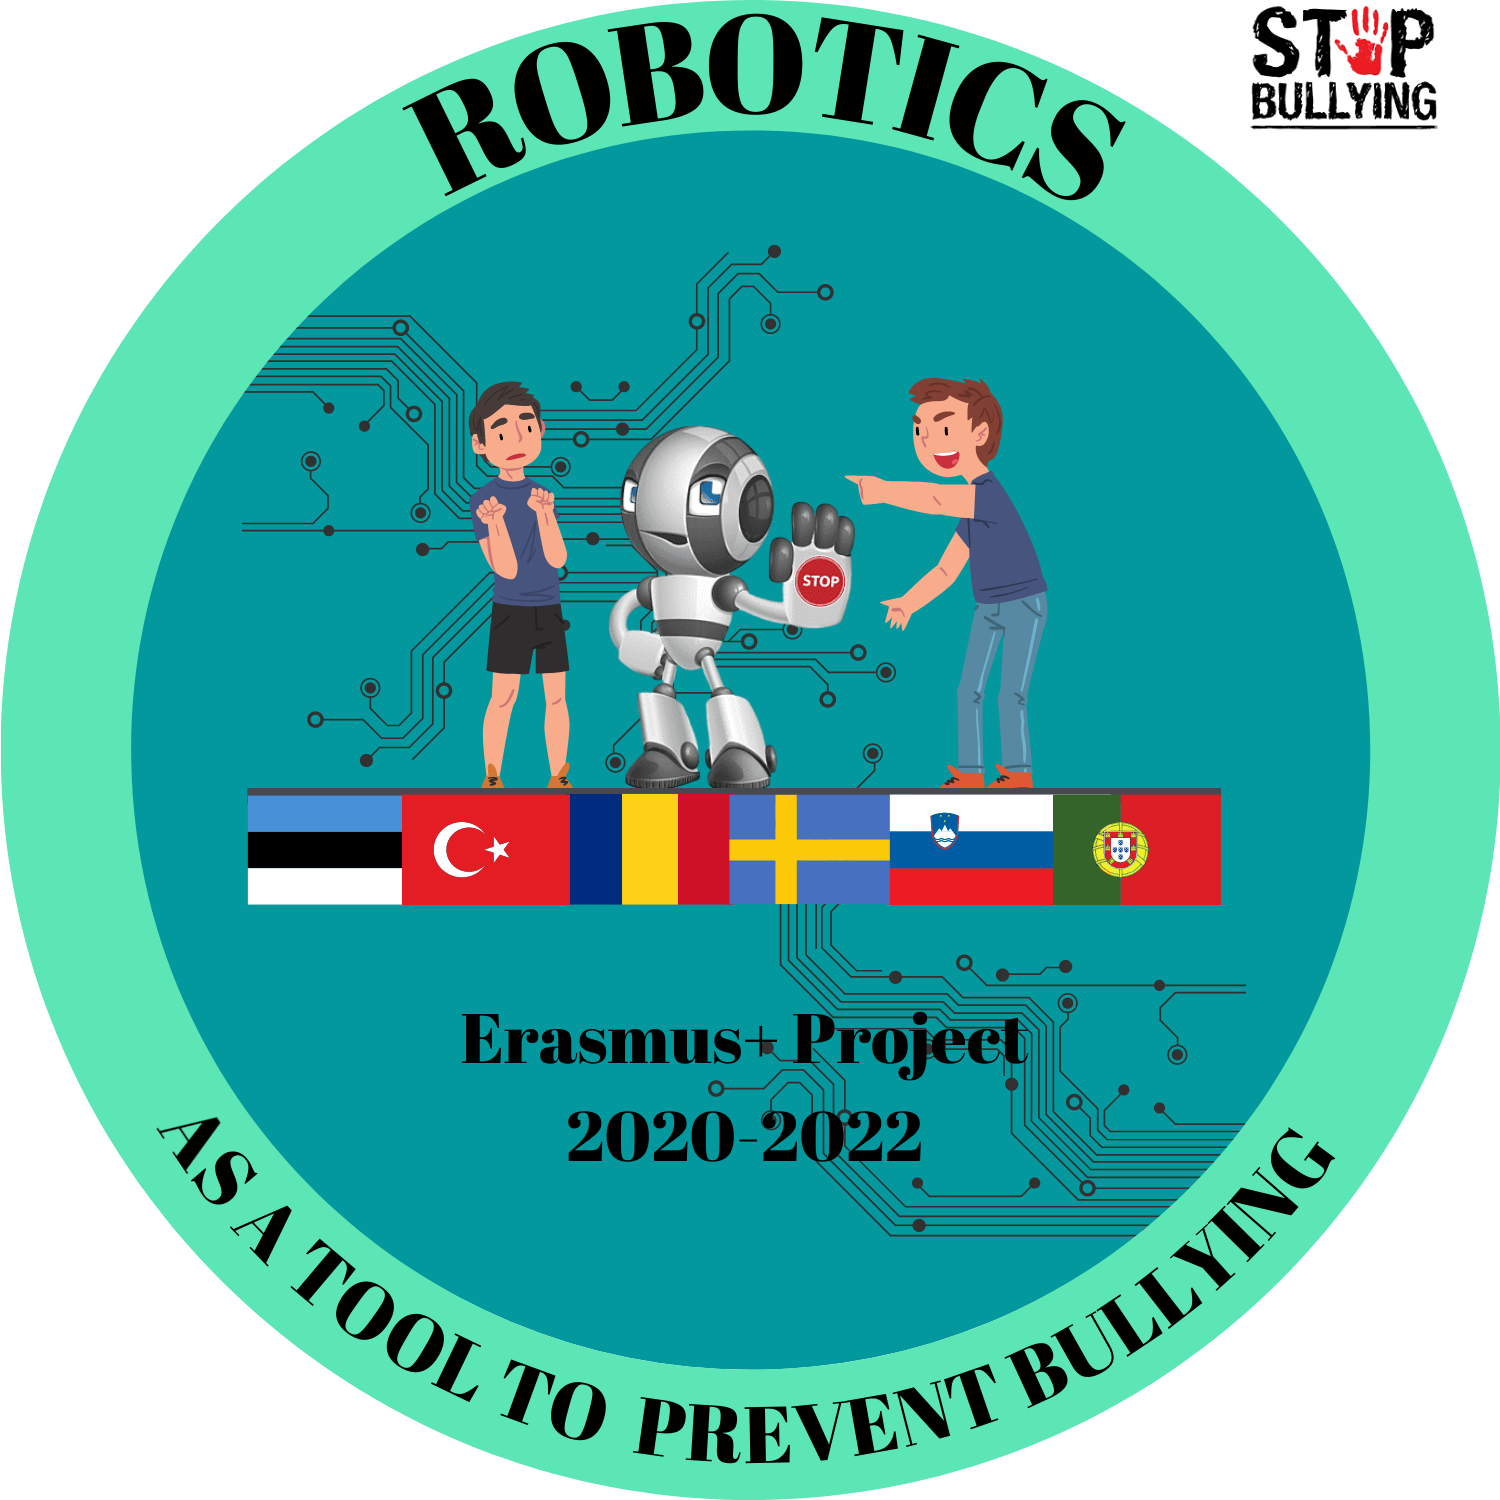 ROBOTICS AS A TOOL TO PREVENT BULLYING